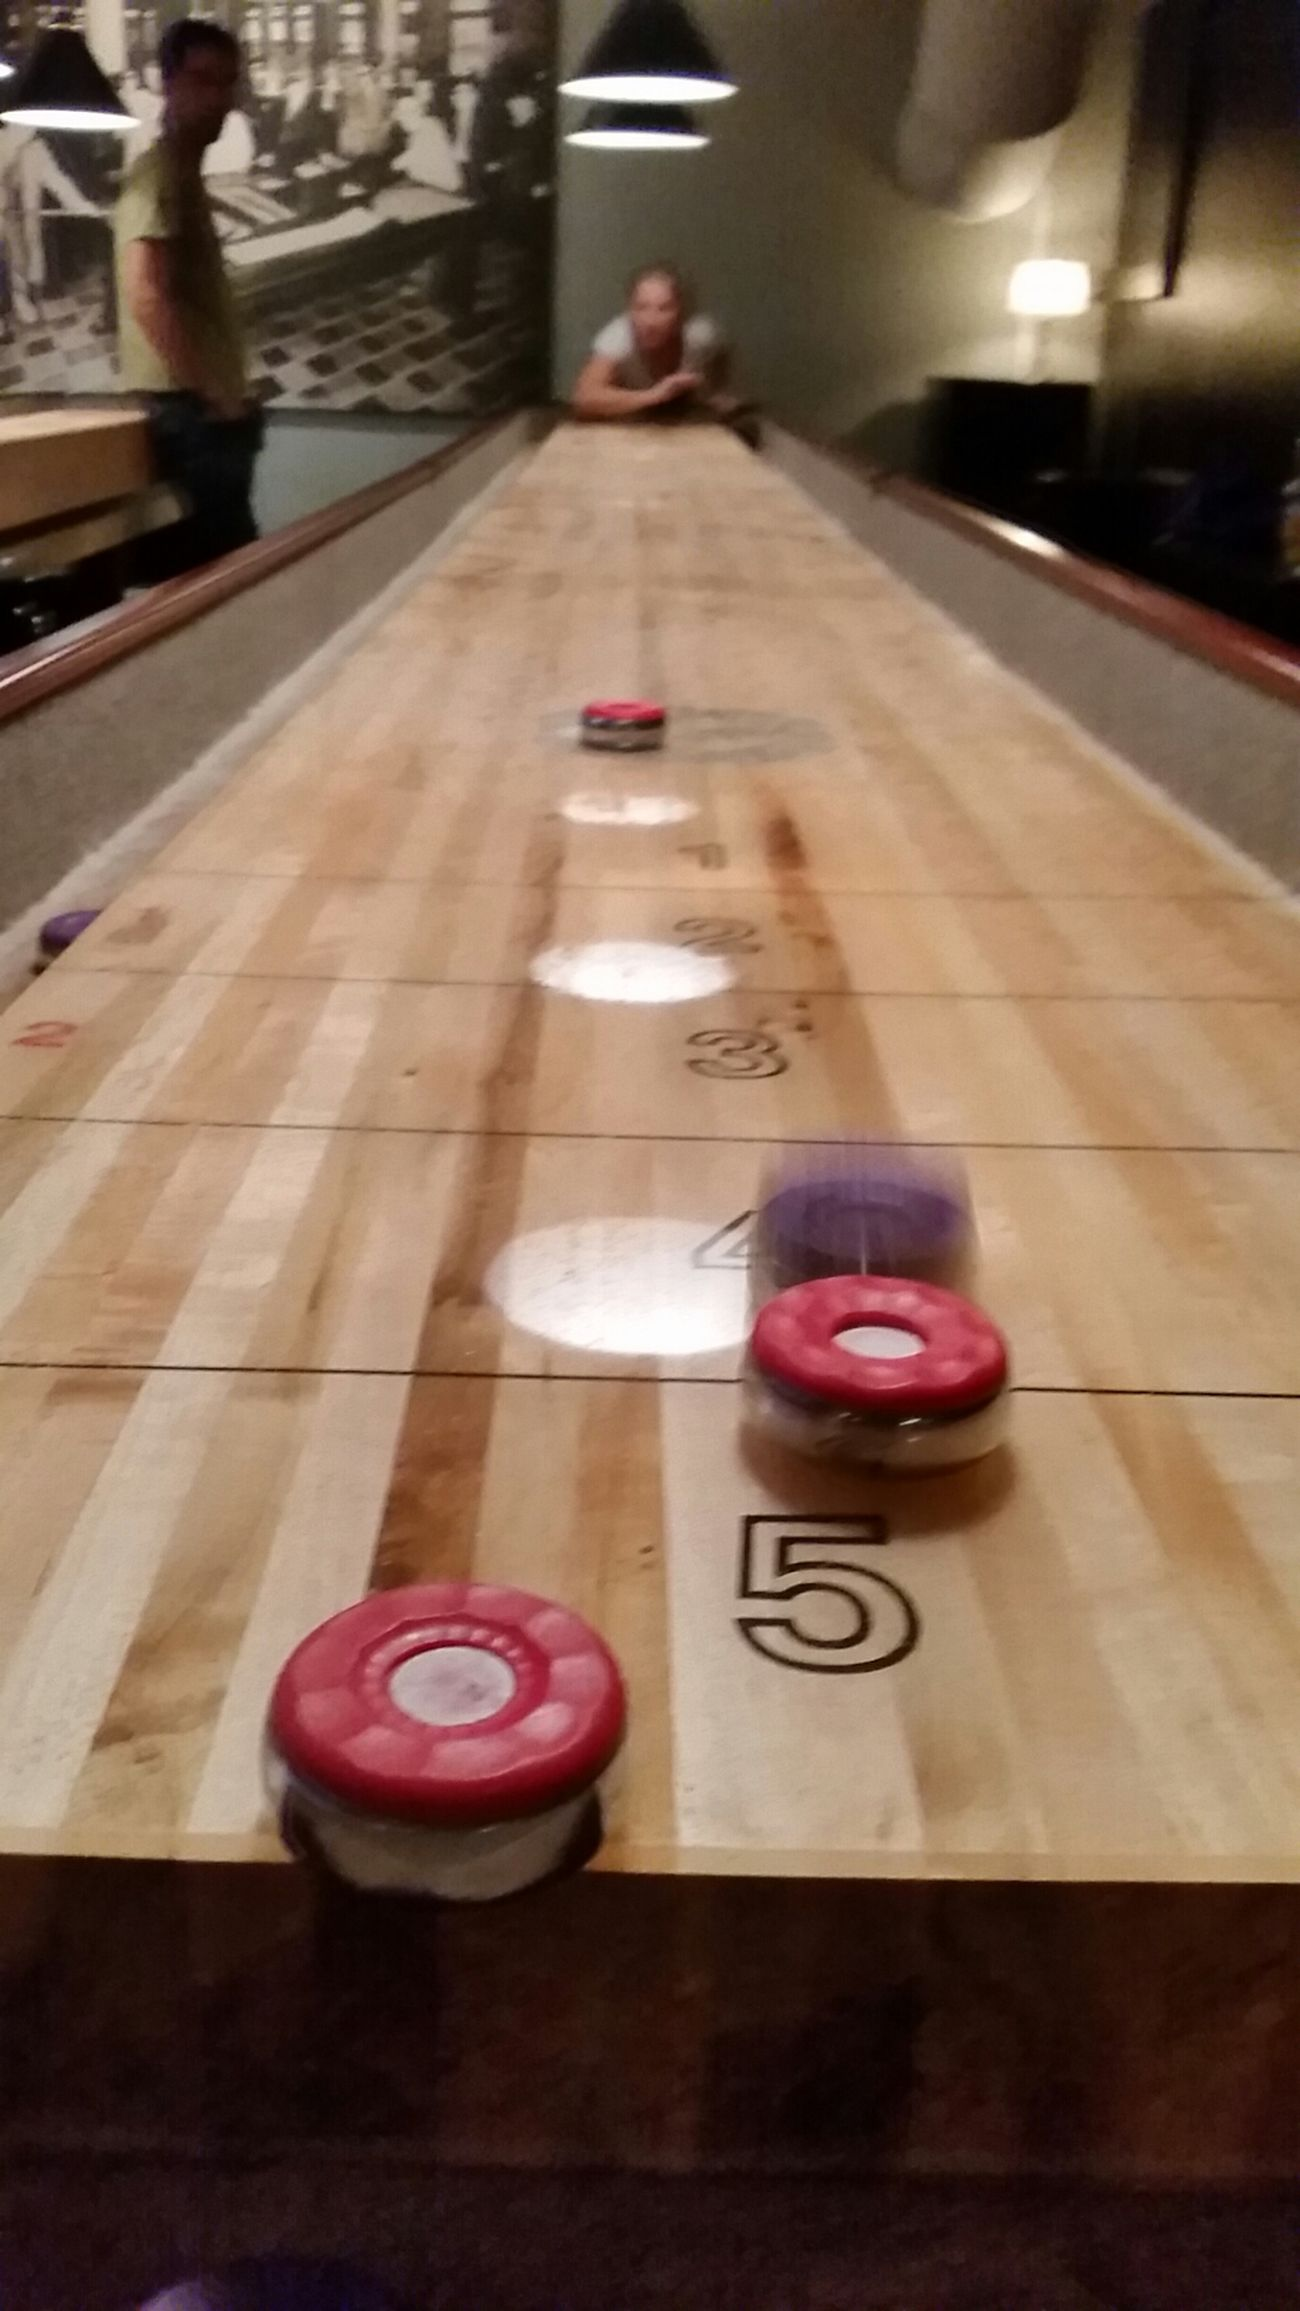 Playing Shuffleboard @ Interpool, Malmö. Friends Shuffle Board Night Out Enjoying Life